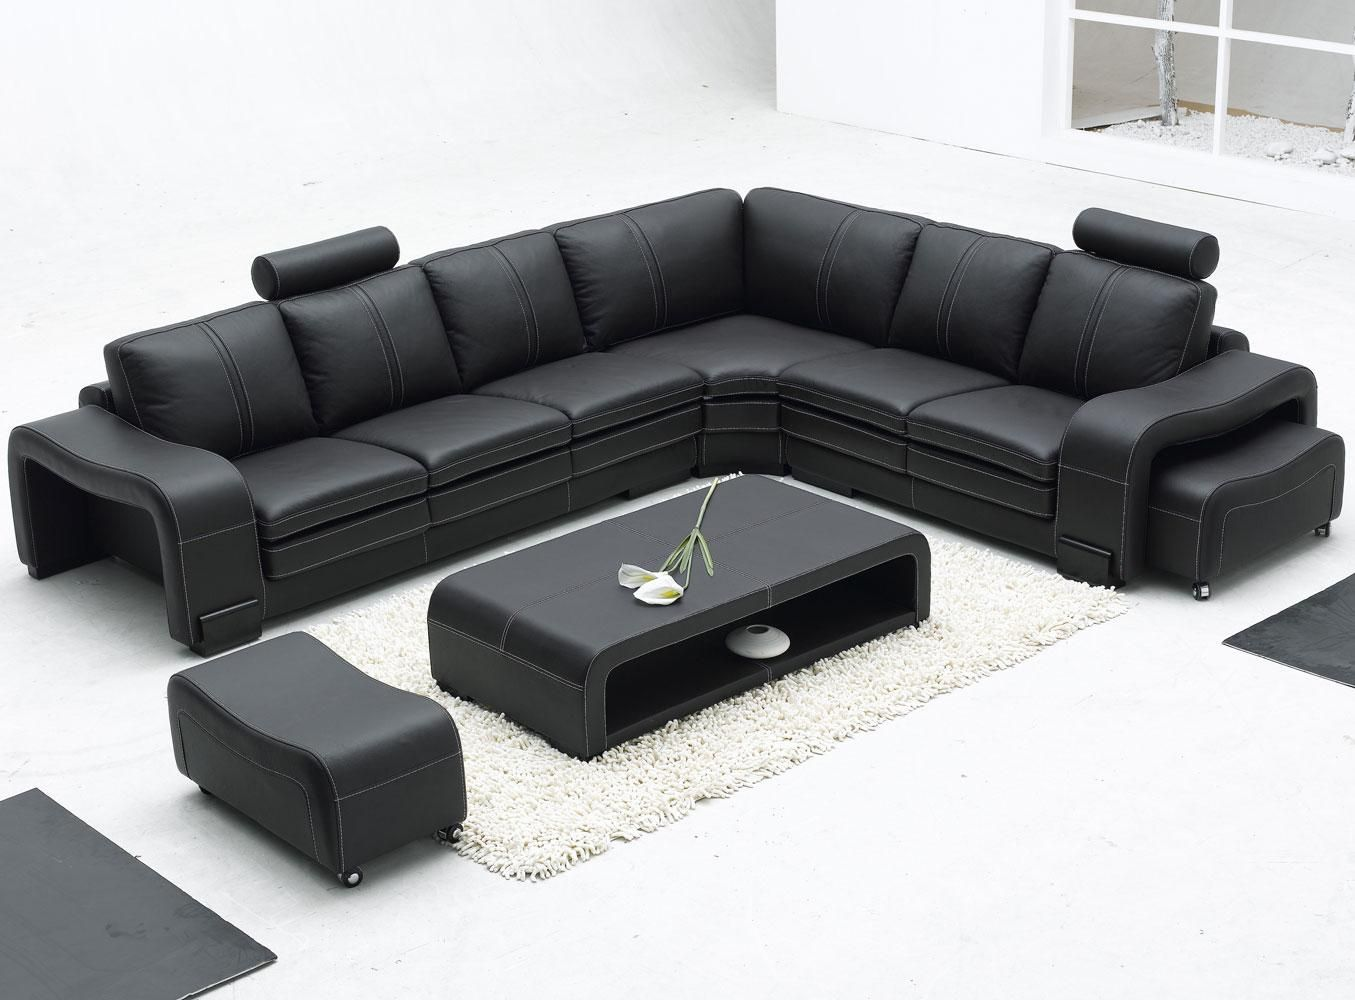 Remarkable Modern Bonded Leather Sectional Sofa In Black With L Shape Design